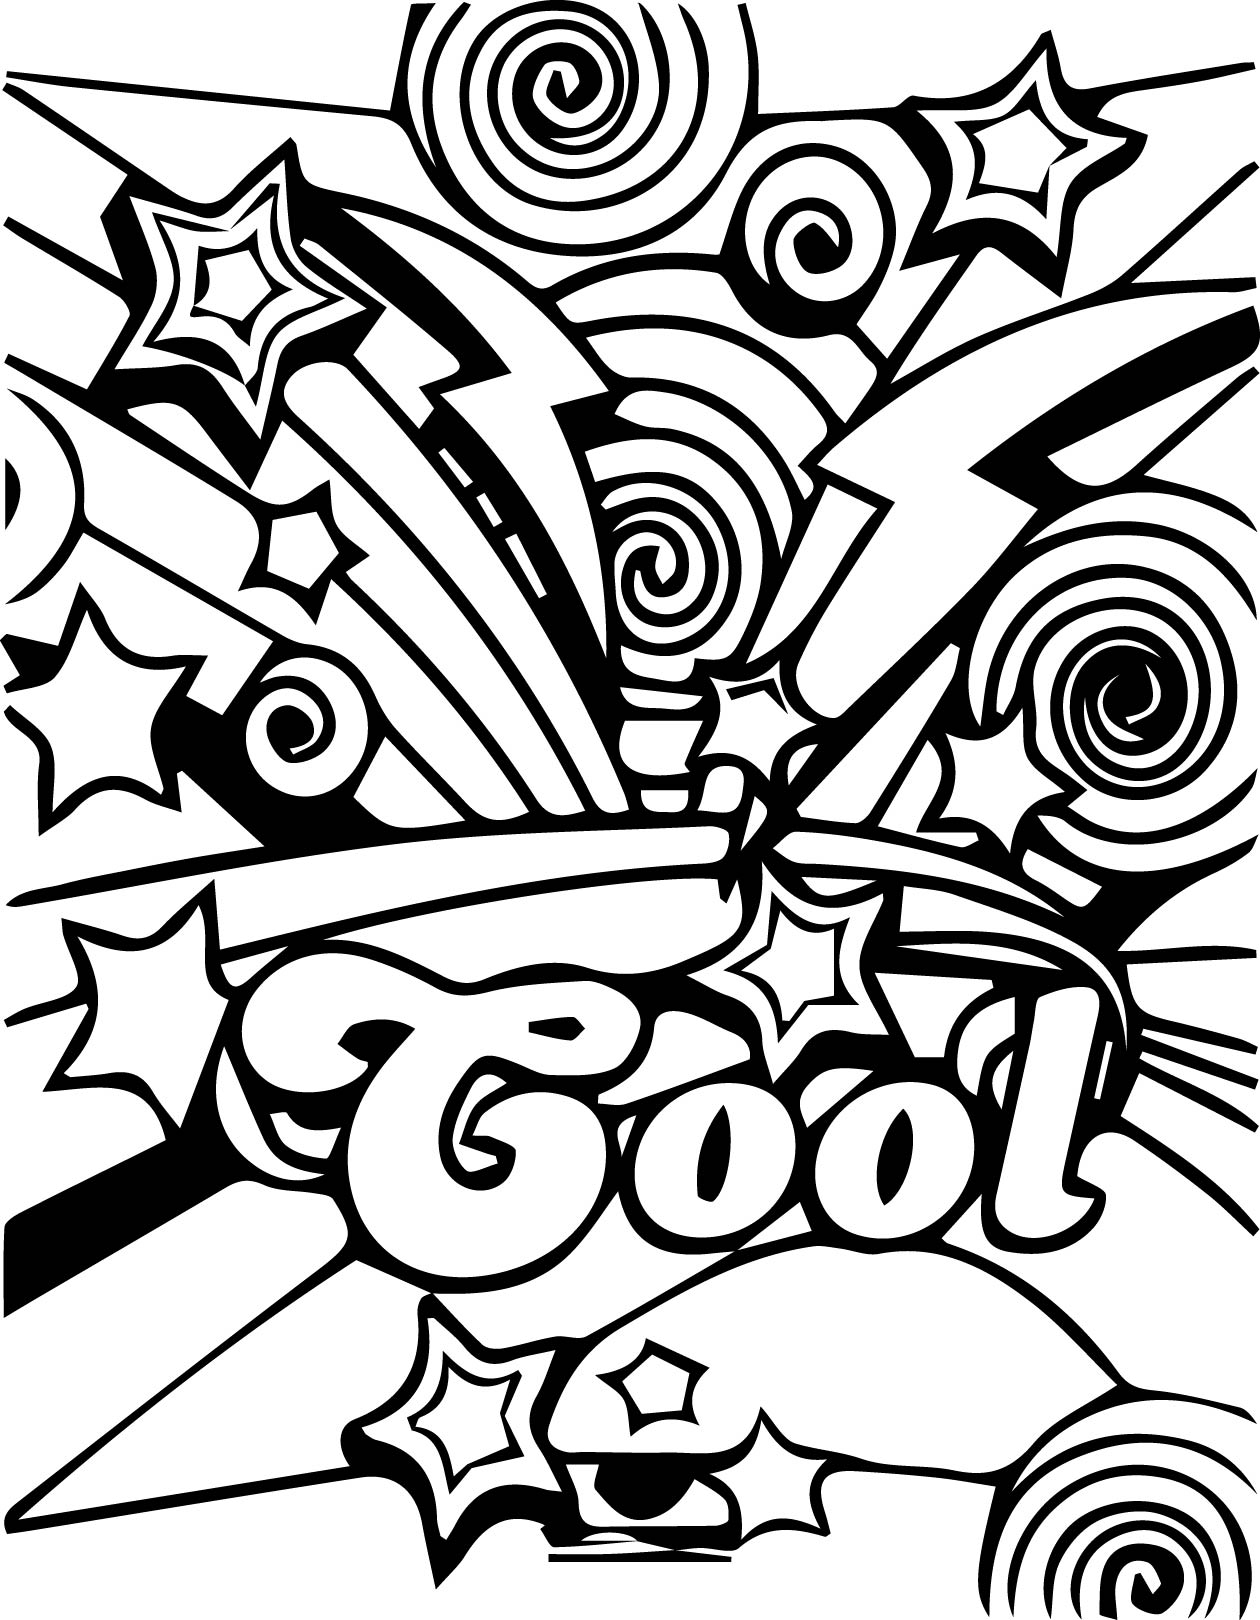 cool coloring pages for teenagers coloring pages of hearts for teenagers difficult pages for cool coloring teenagers